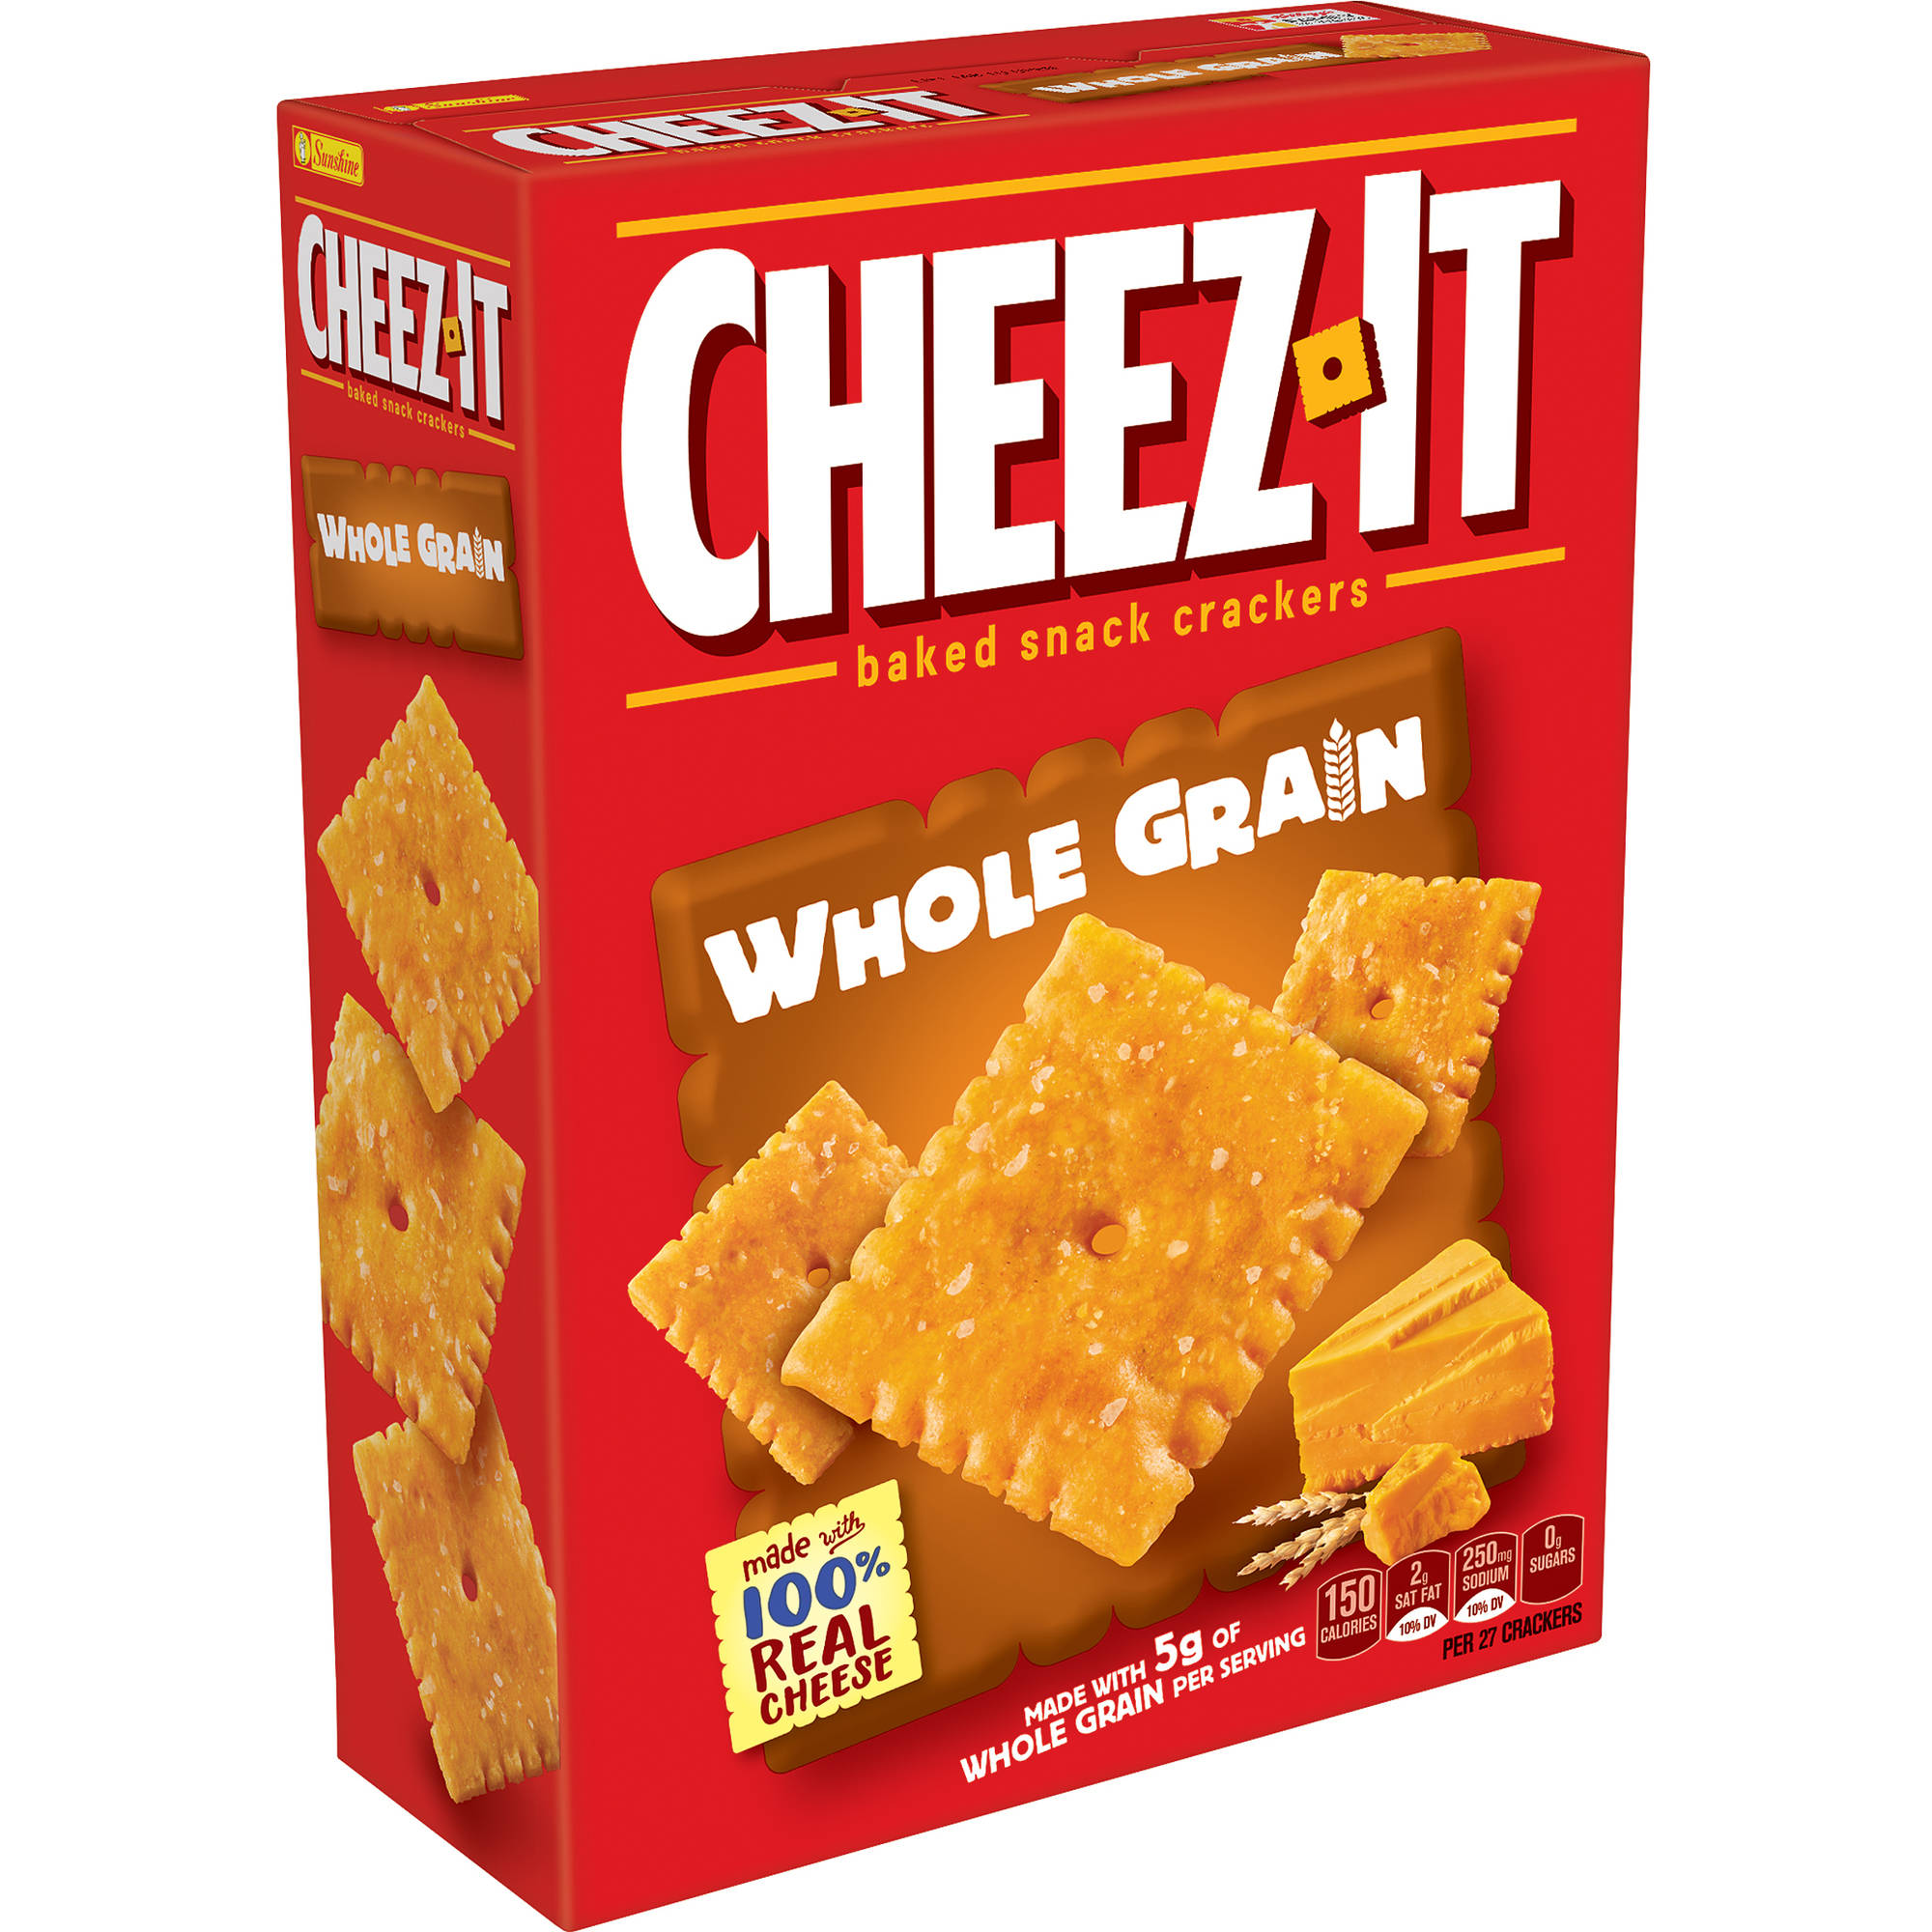 Cheez-It Whole Grain Baked Snack Crackers, 12.4 oz